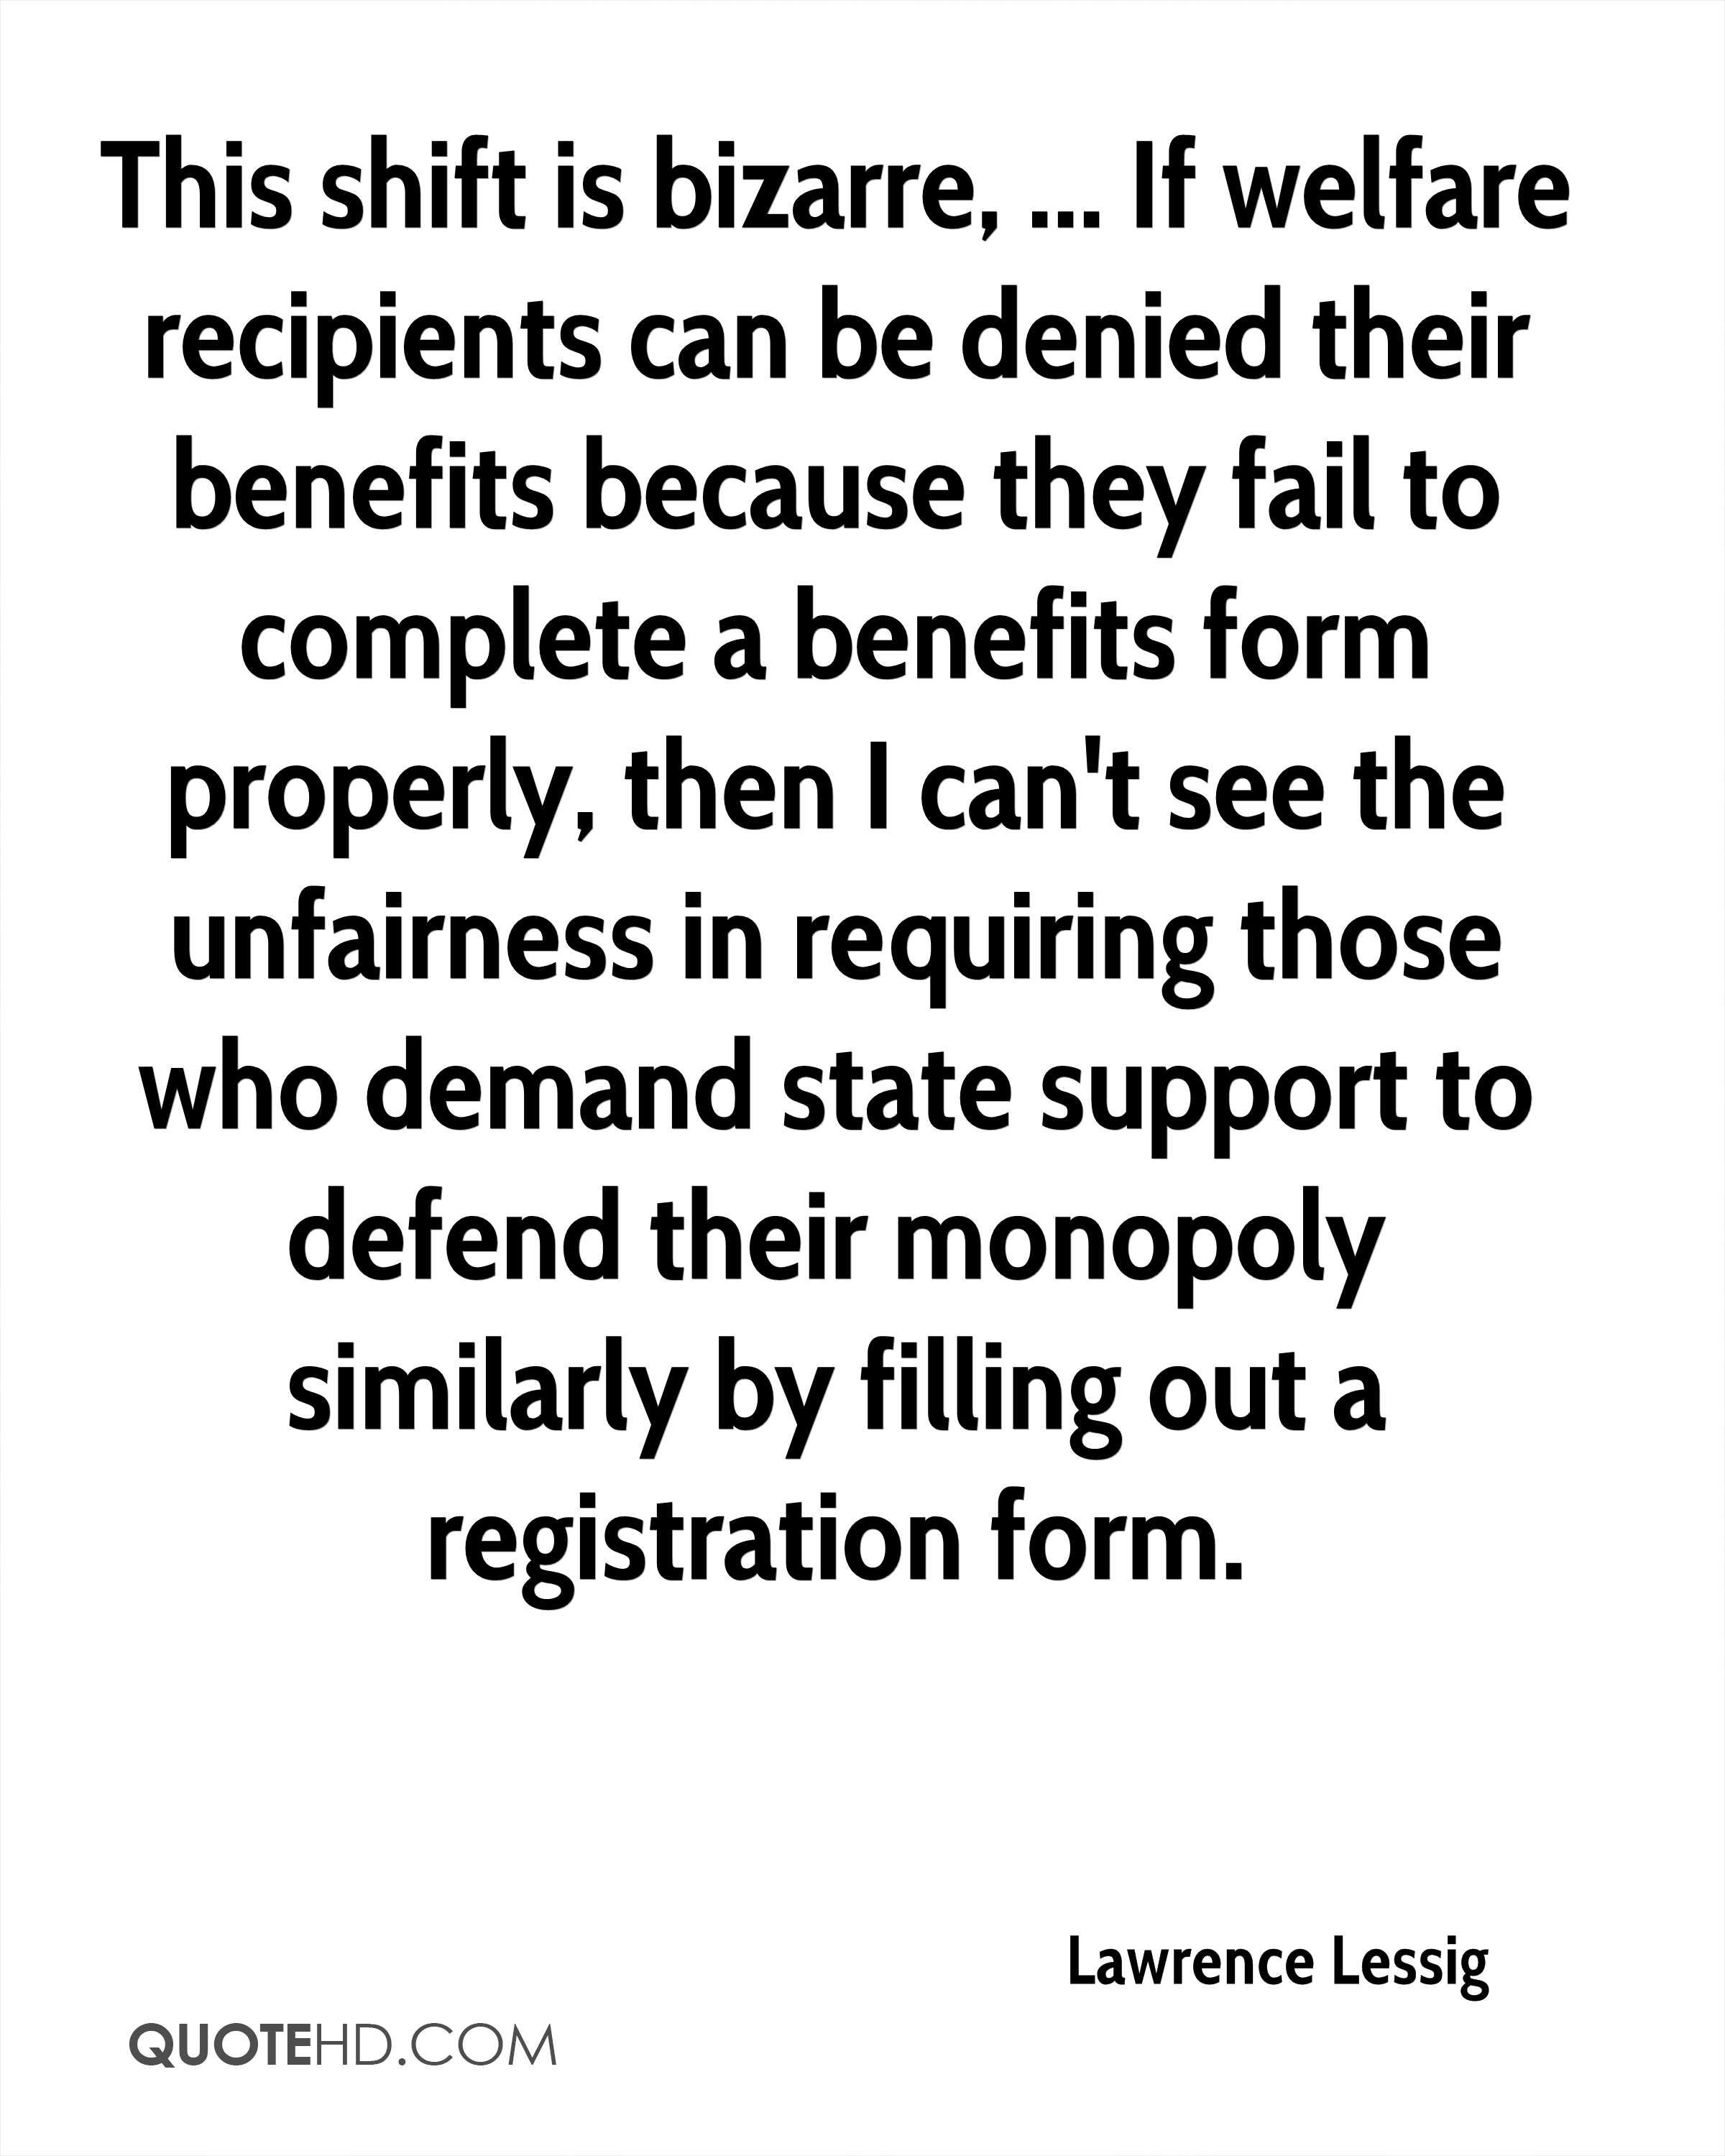 This shift is bizarre, ... If welfare recipients can be denied their benefits because they fail to complete a benefits form properly, then I can't see the unfairness in requiring those who demand state support to defend their monopoly similarly by filling out a registration form.